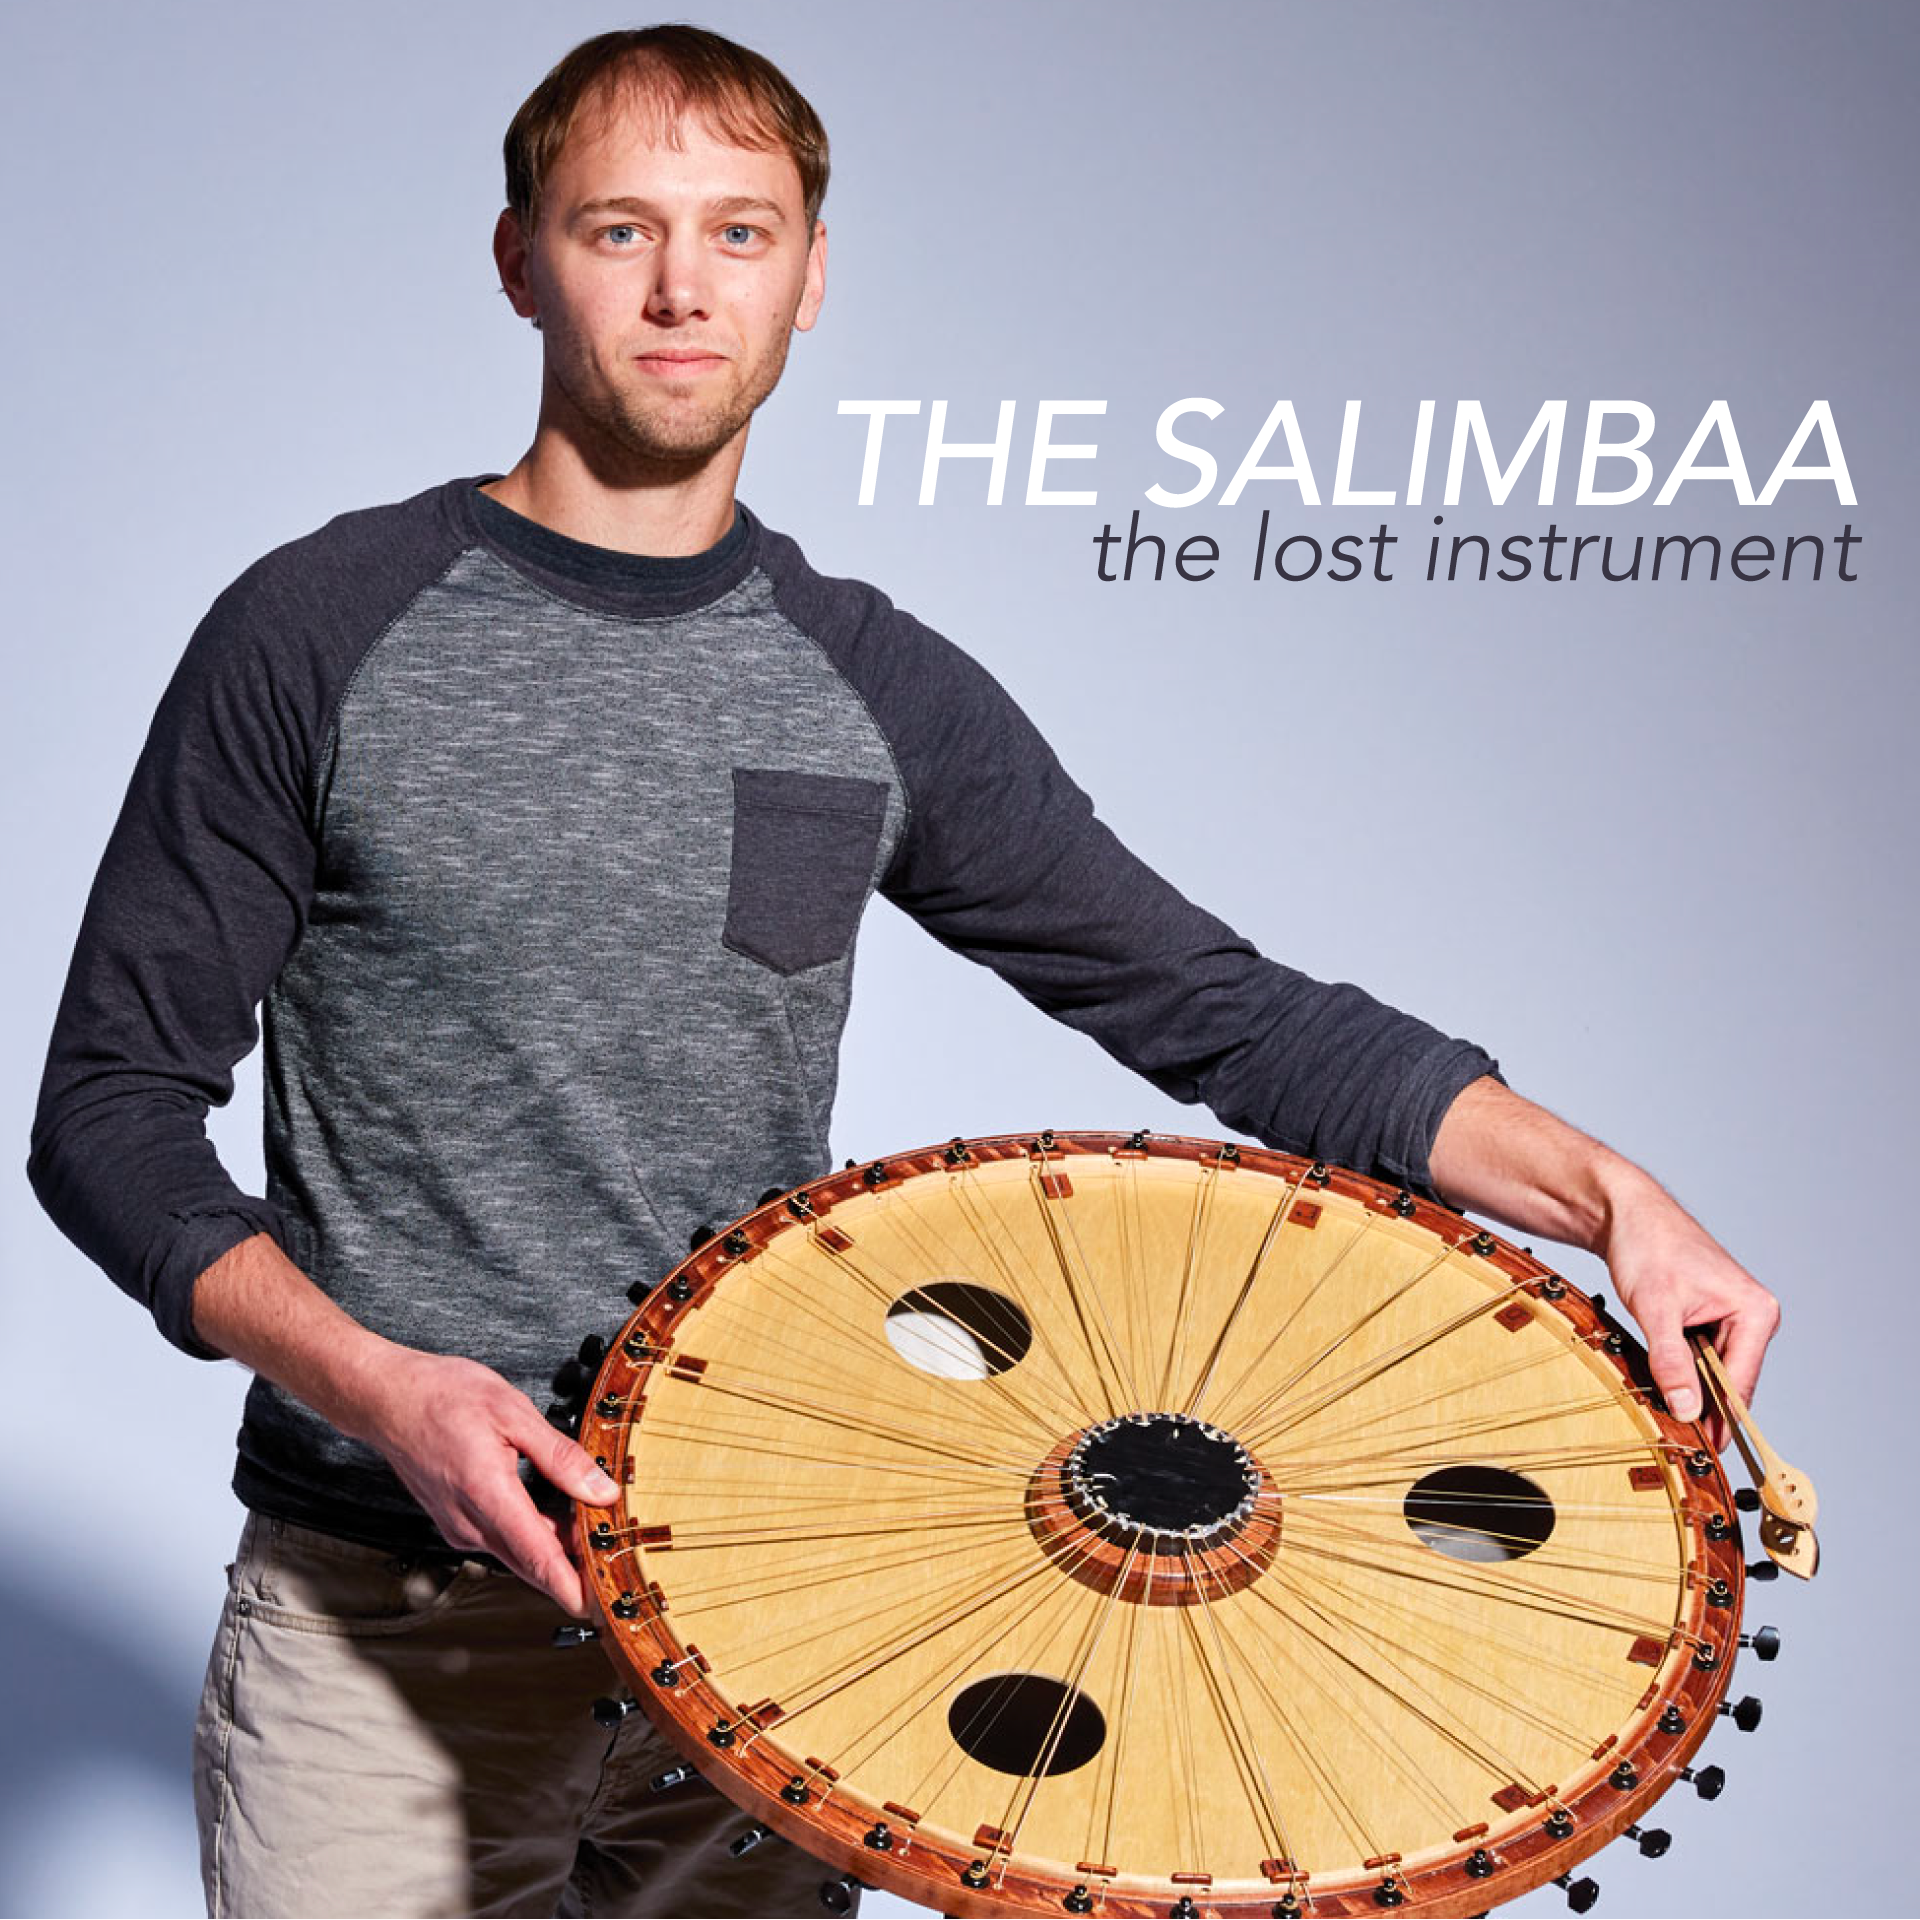 The Salimbaa the lost instrument